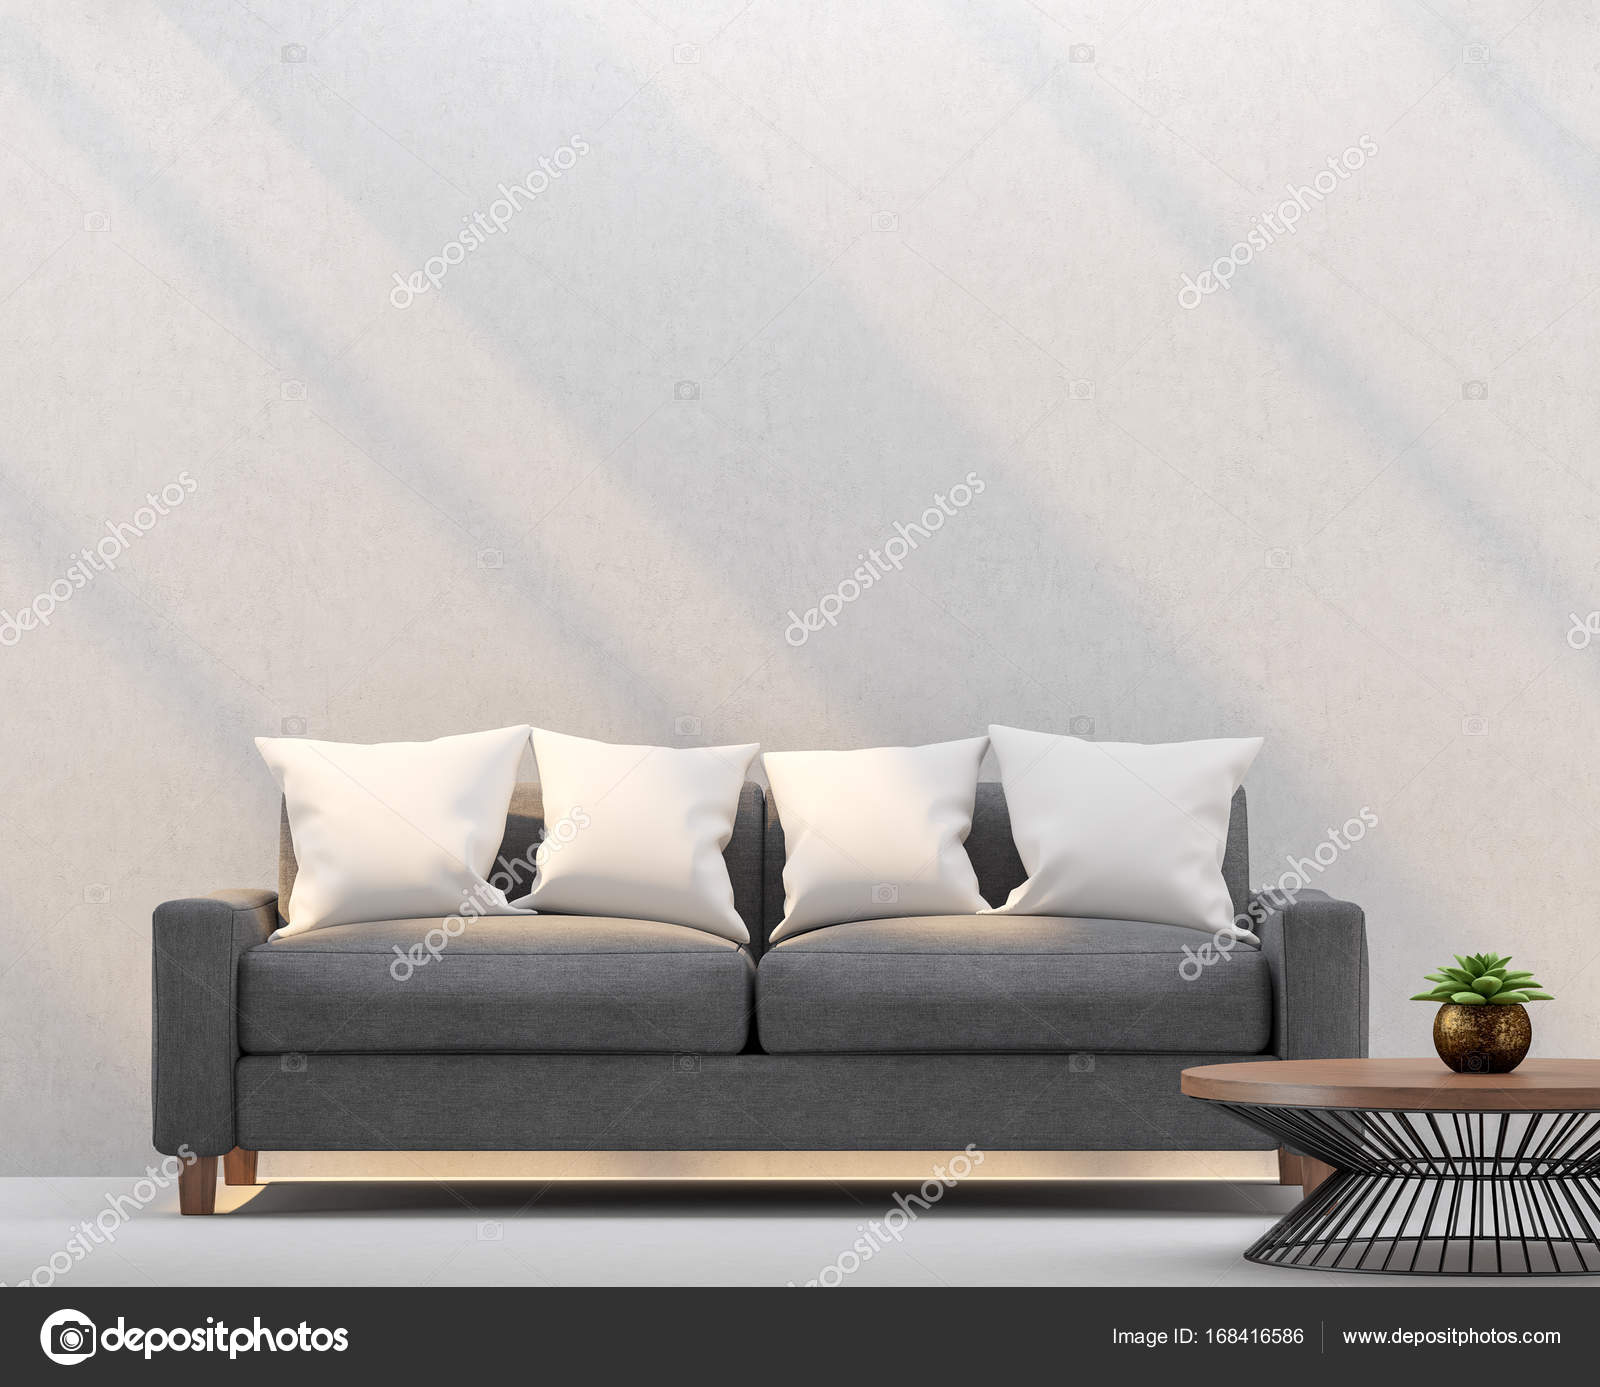 Modern Living Room And Empty Walls With Sunlight Shining Through 3d Rendering ImageThere Are White Wall PlasterFurnished Dark Gray Fabric Sofa